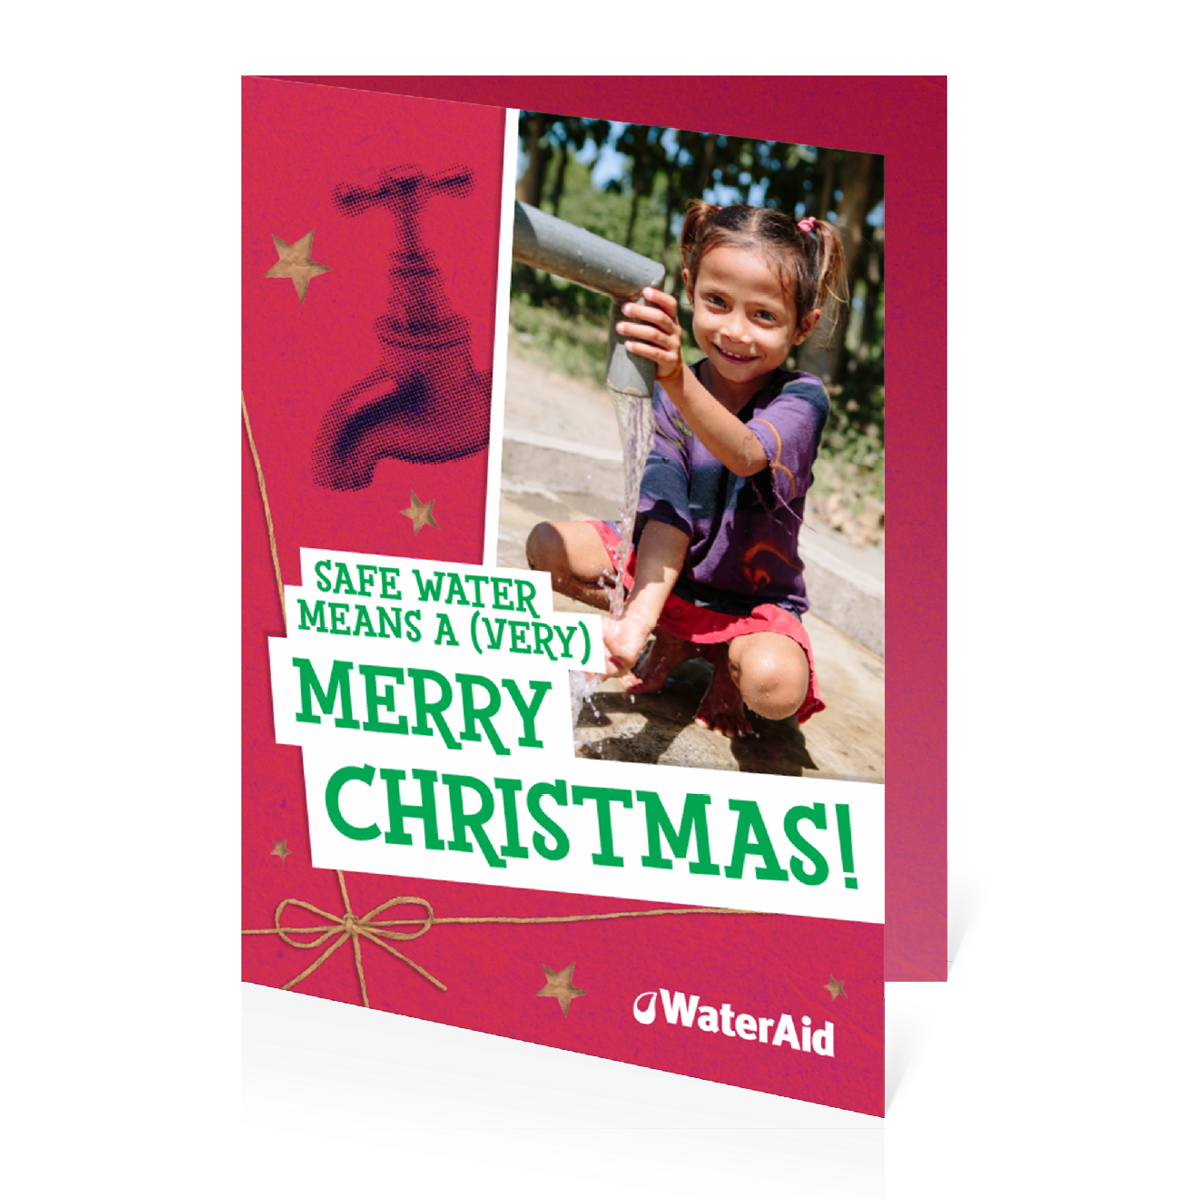 $27 can buy materials to help build toilets and tap stands (Christmas card)